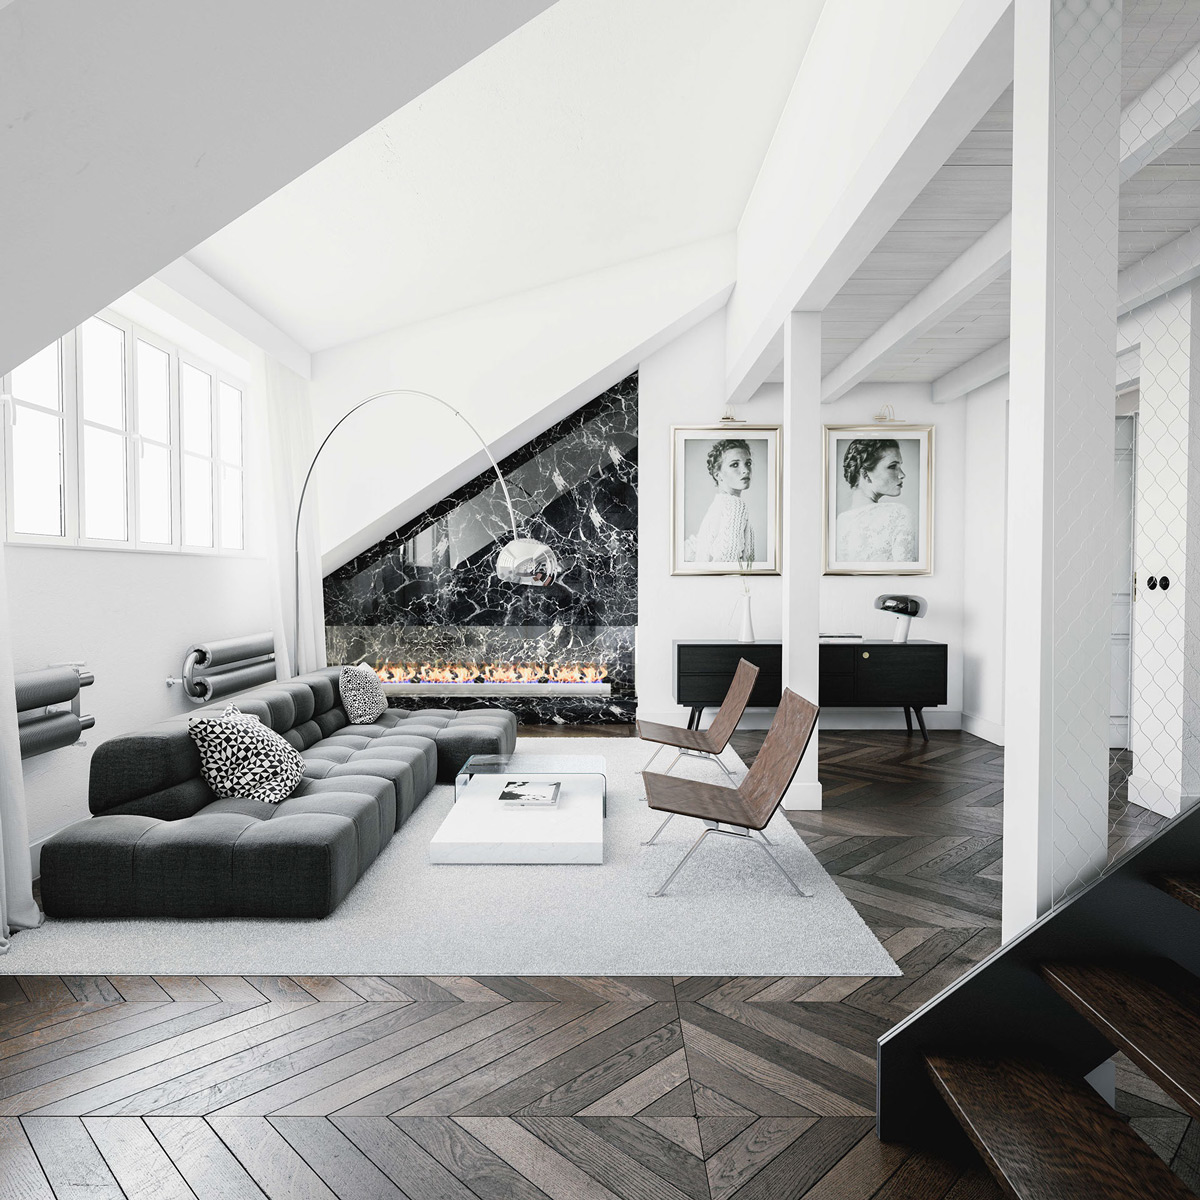 grey-and-black-and-white-living-room-model-portraits-overhanging-lights-wooden-chairs-simple-white-coffee-table-geomtric-flooring-and-ceiling-fireplace